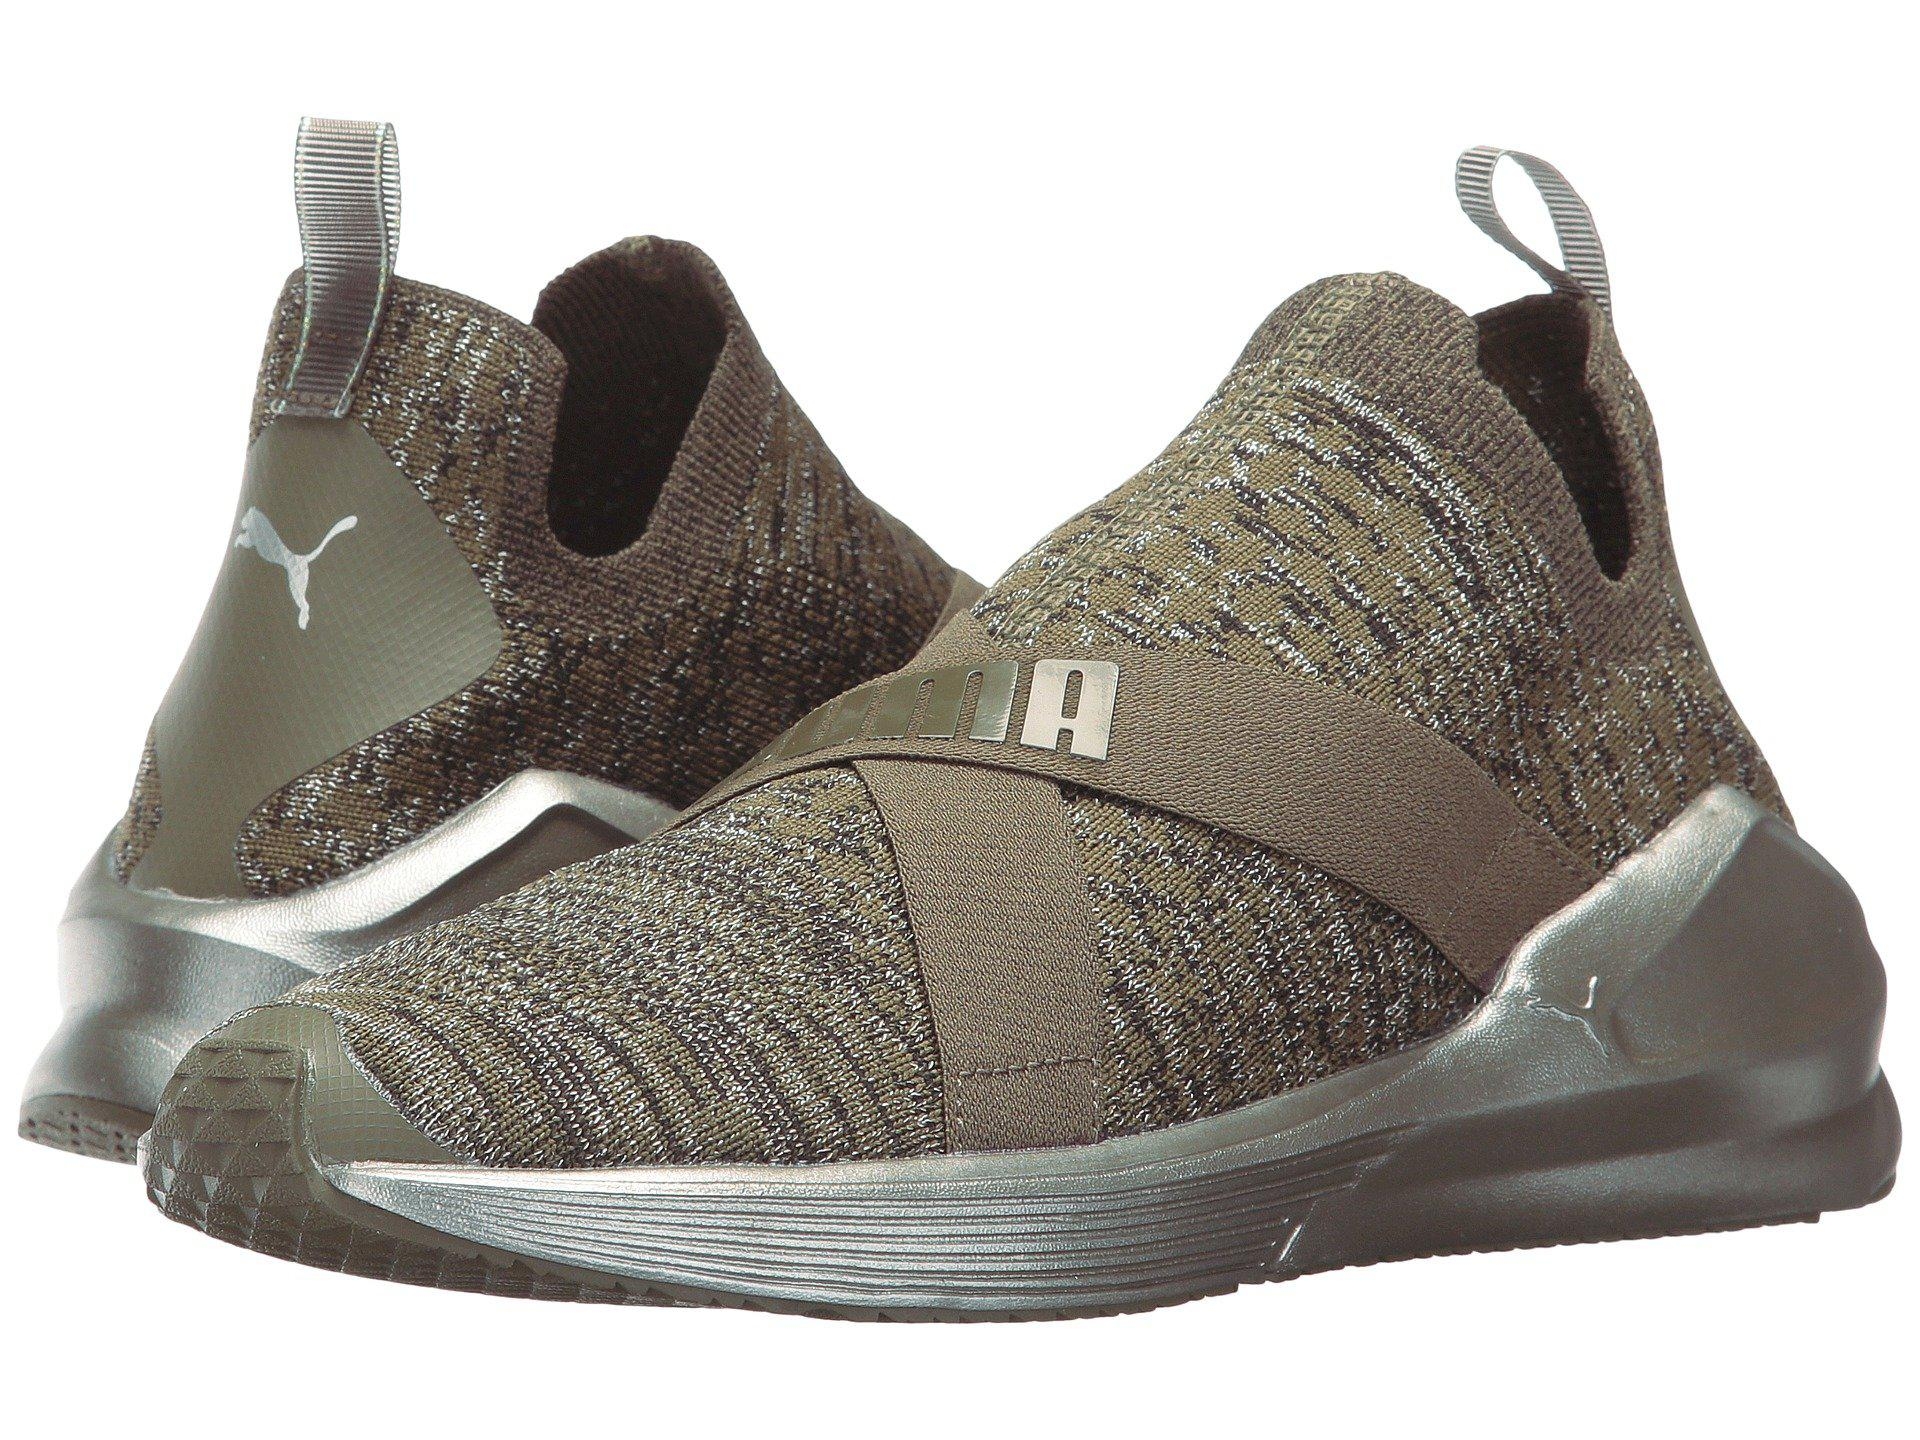 Lyst - Puma Fierce Evoknit Metallic in Metallic for Men 77104ba66fb